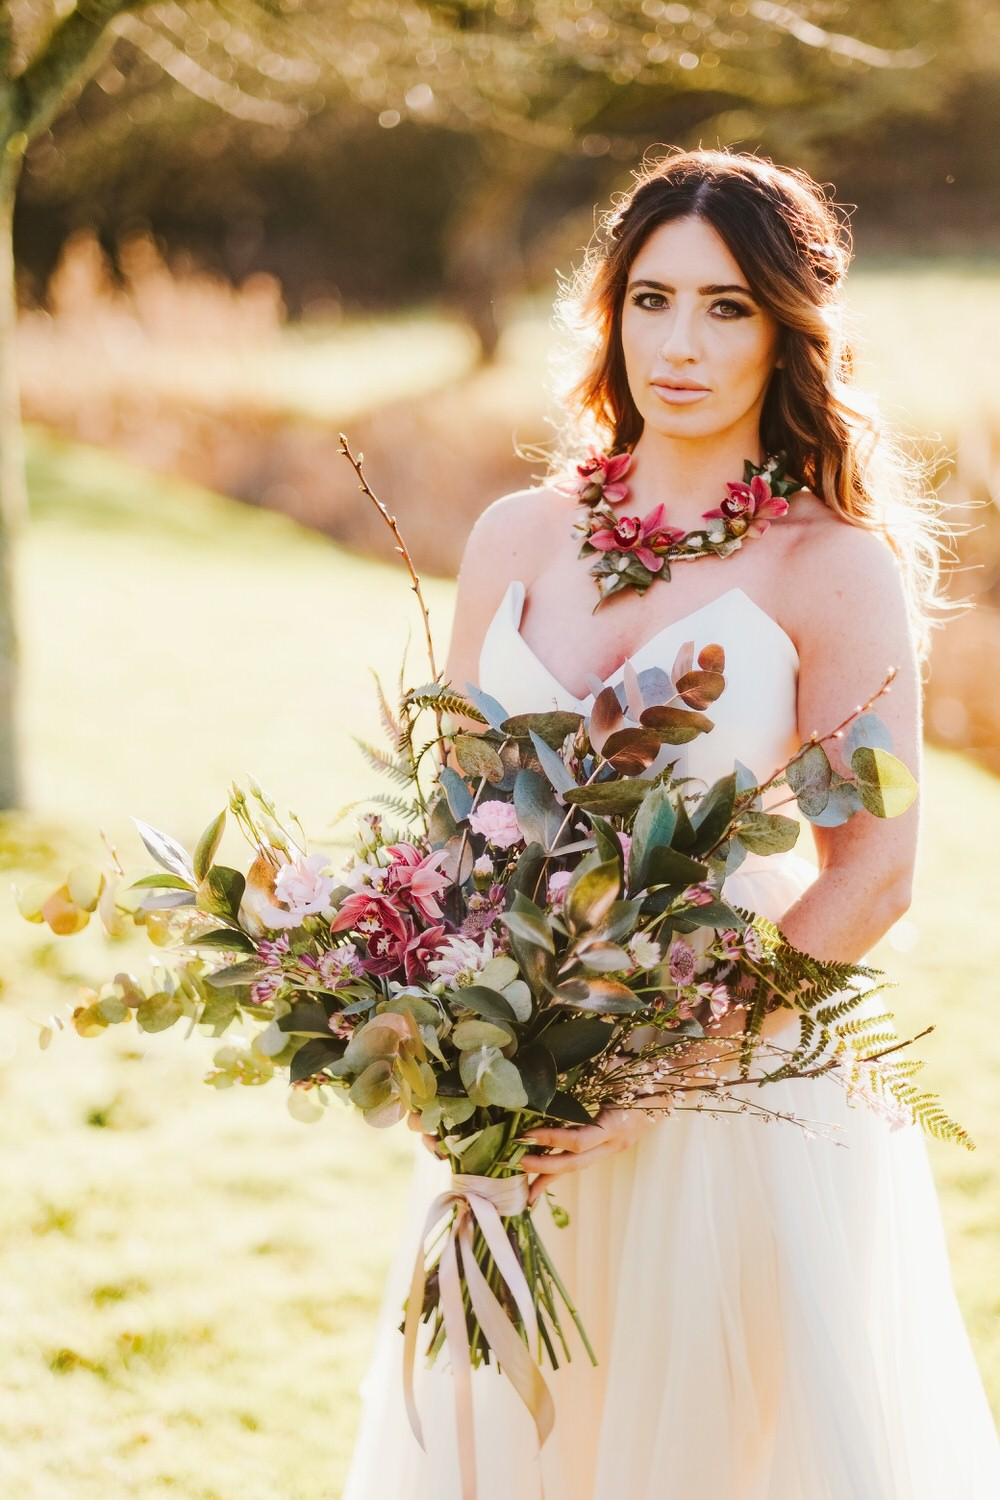 Bride Bridal Bouquet Flowers Large Wild Foliage Greenery Roses Romantic Wedding Ideas Neon Lighting Kate McCarthy Photography